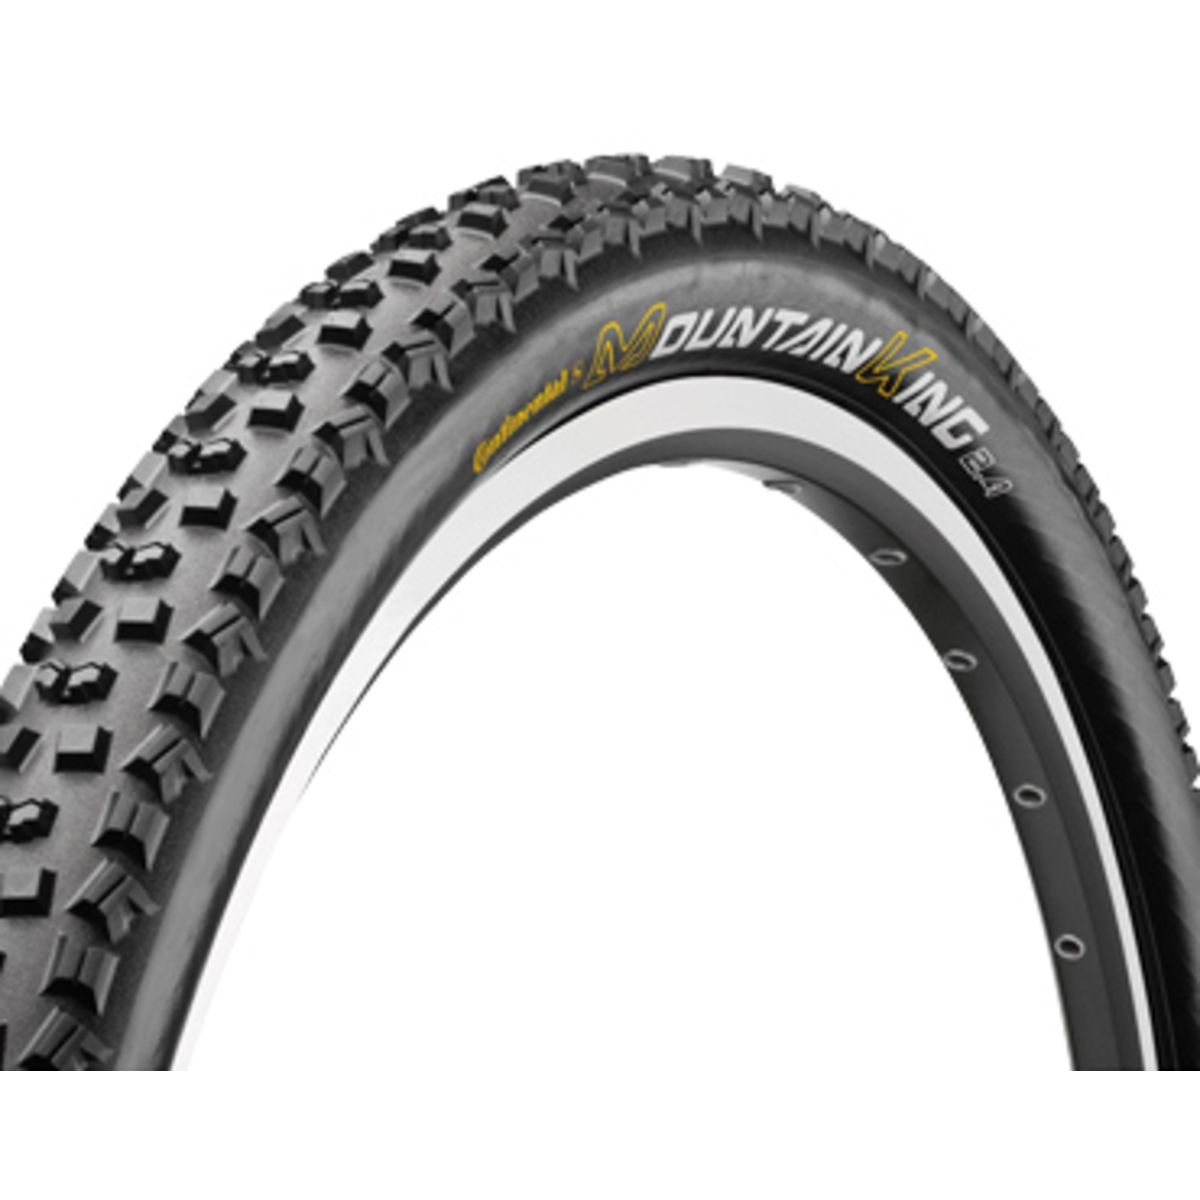 Mountain King II Sport MTB tyre, clincher